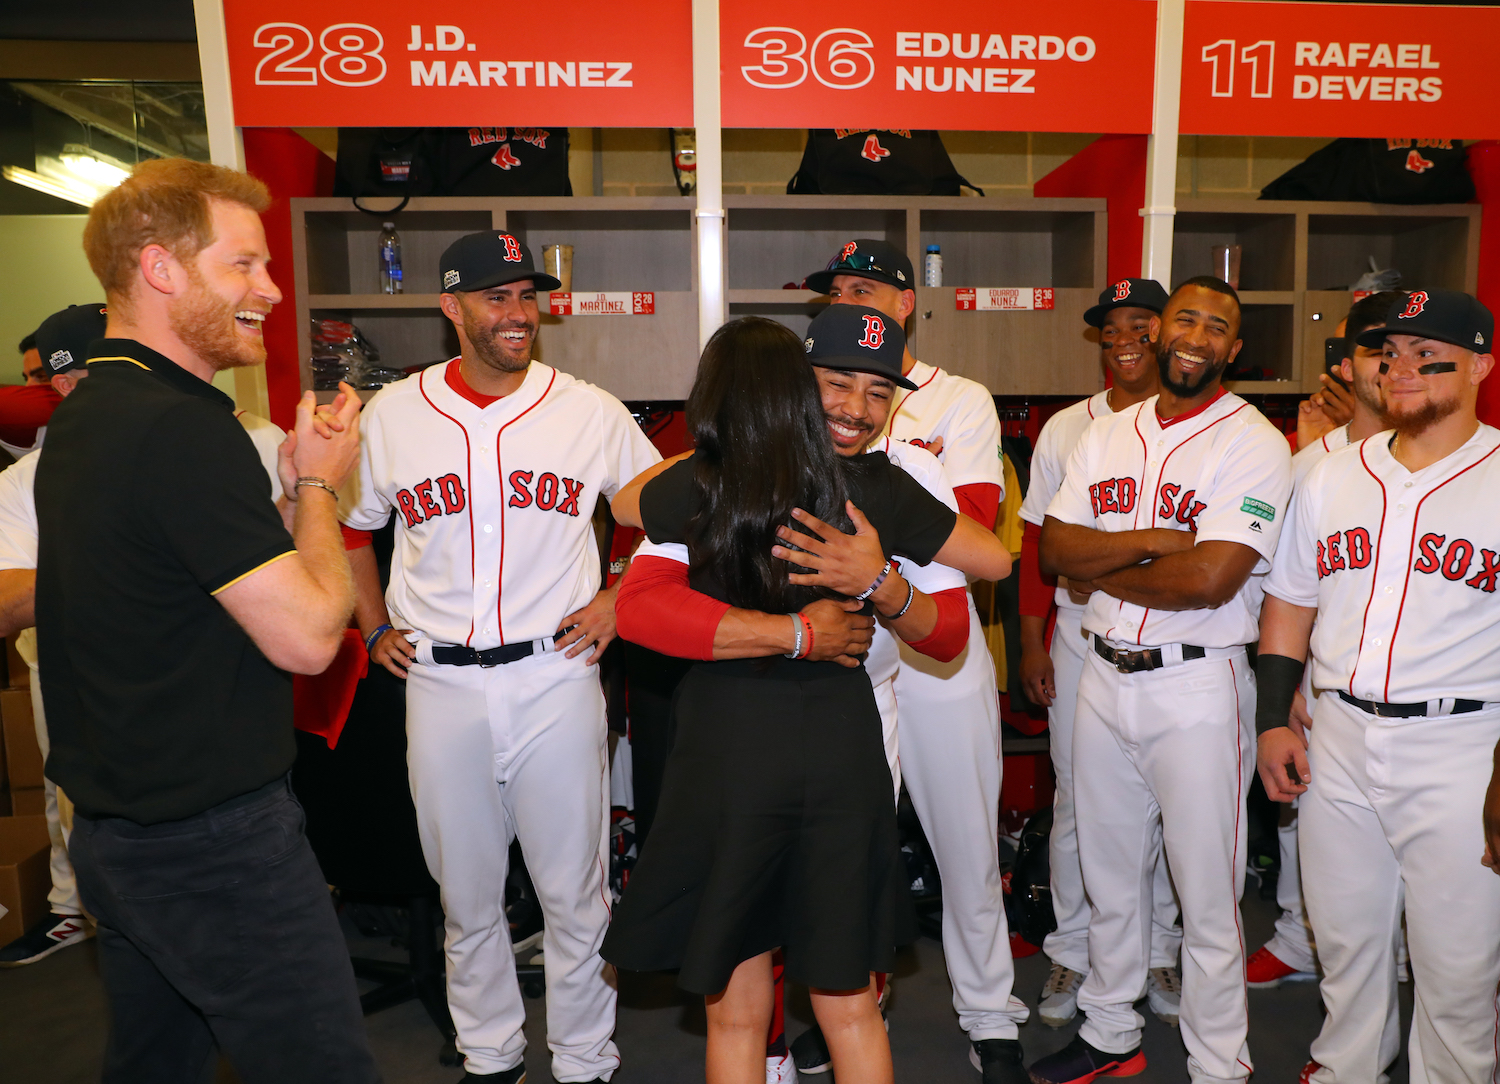 Meghan Markle greets distant relative Mookie Betts